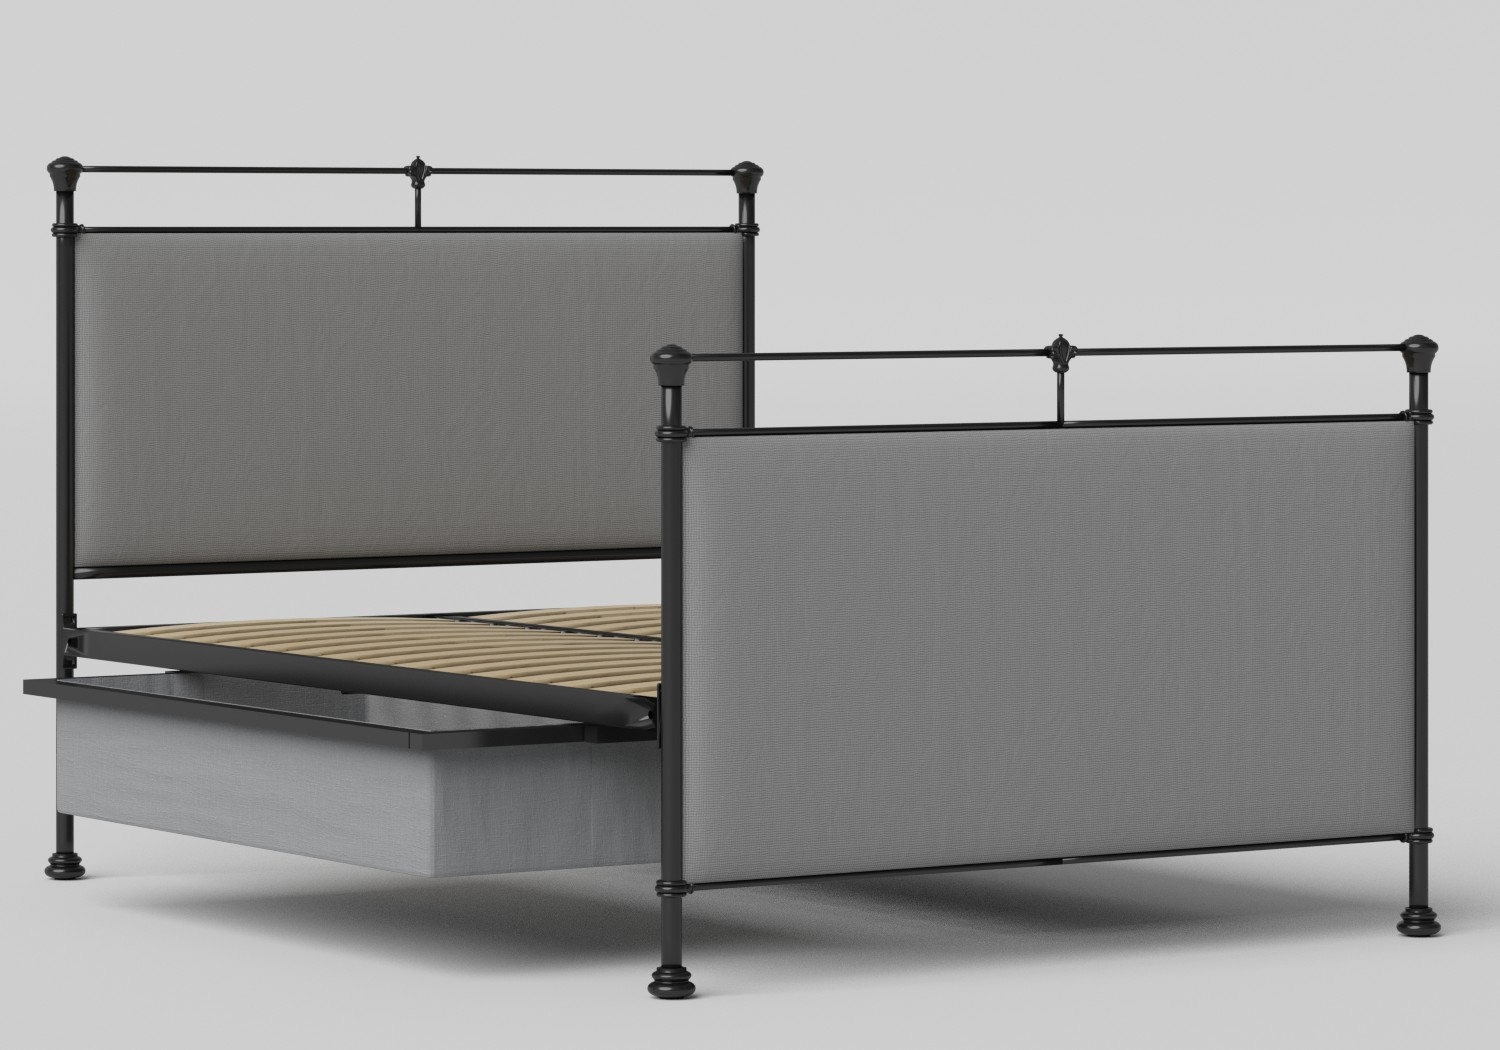 Lille Iron/Metal Upholstered Bed in Satin Black with Grey fabric shown with underbed storage